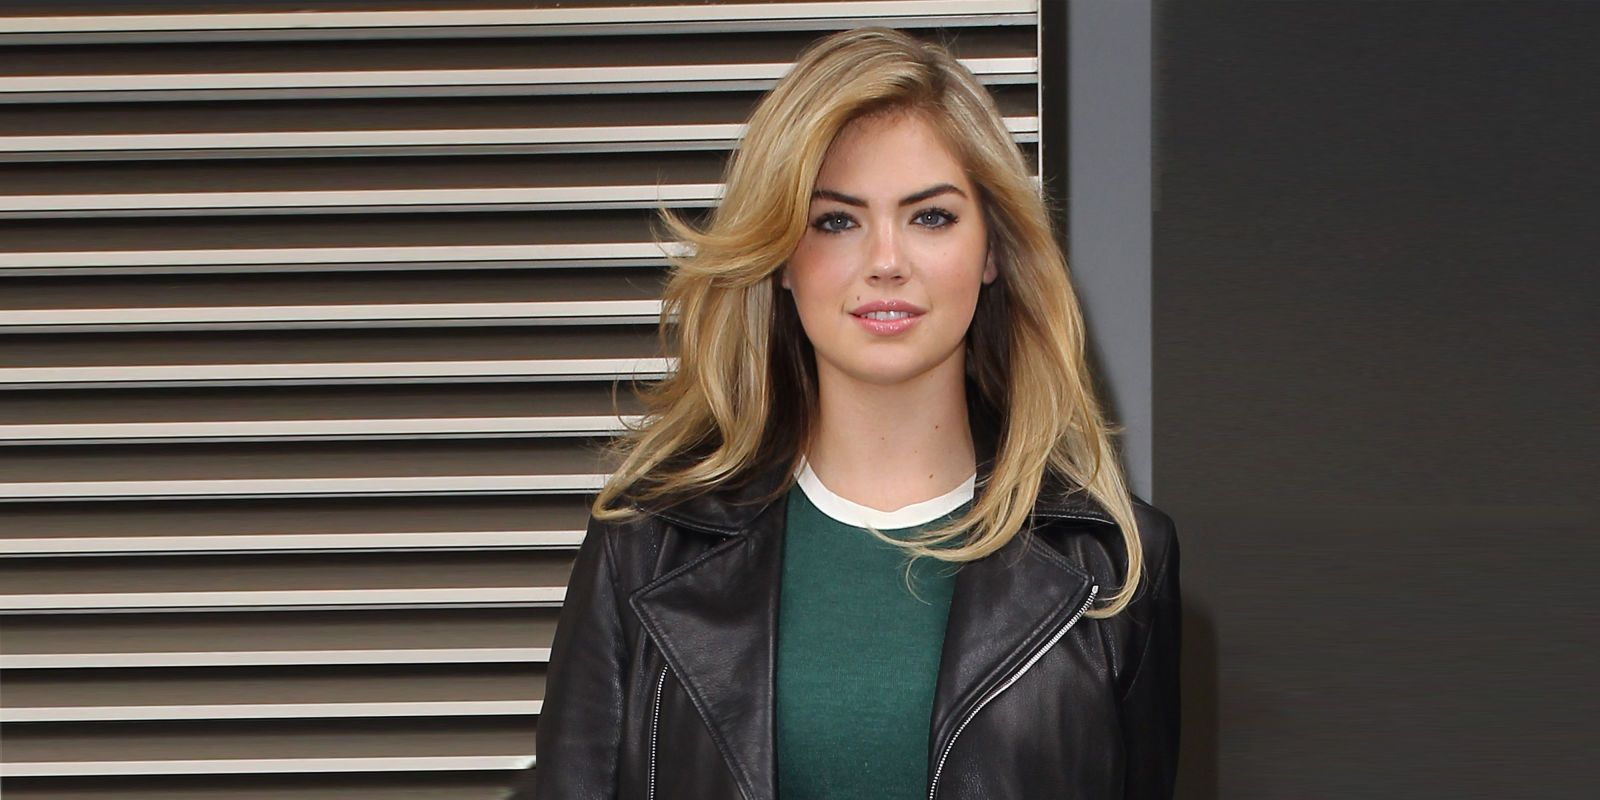 Kate Upton Shares All the Intimate Details of Her Beauty Routine  - MarieClaire.com